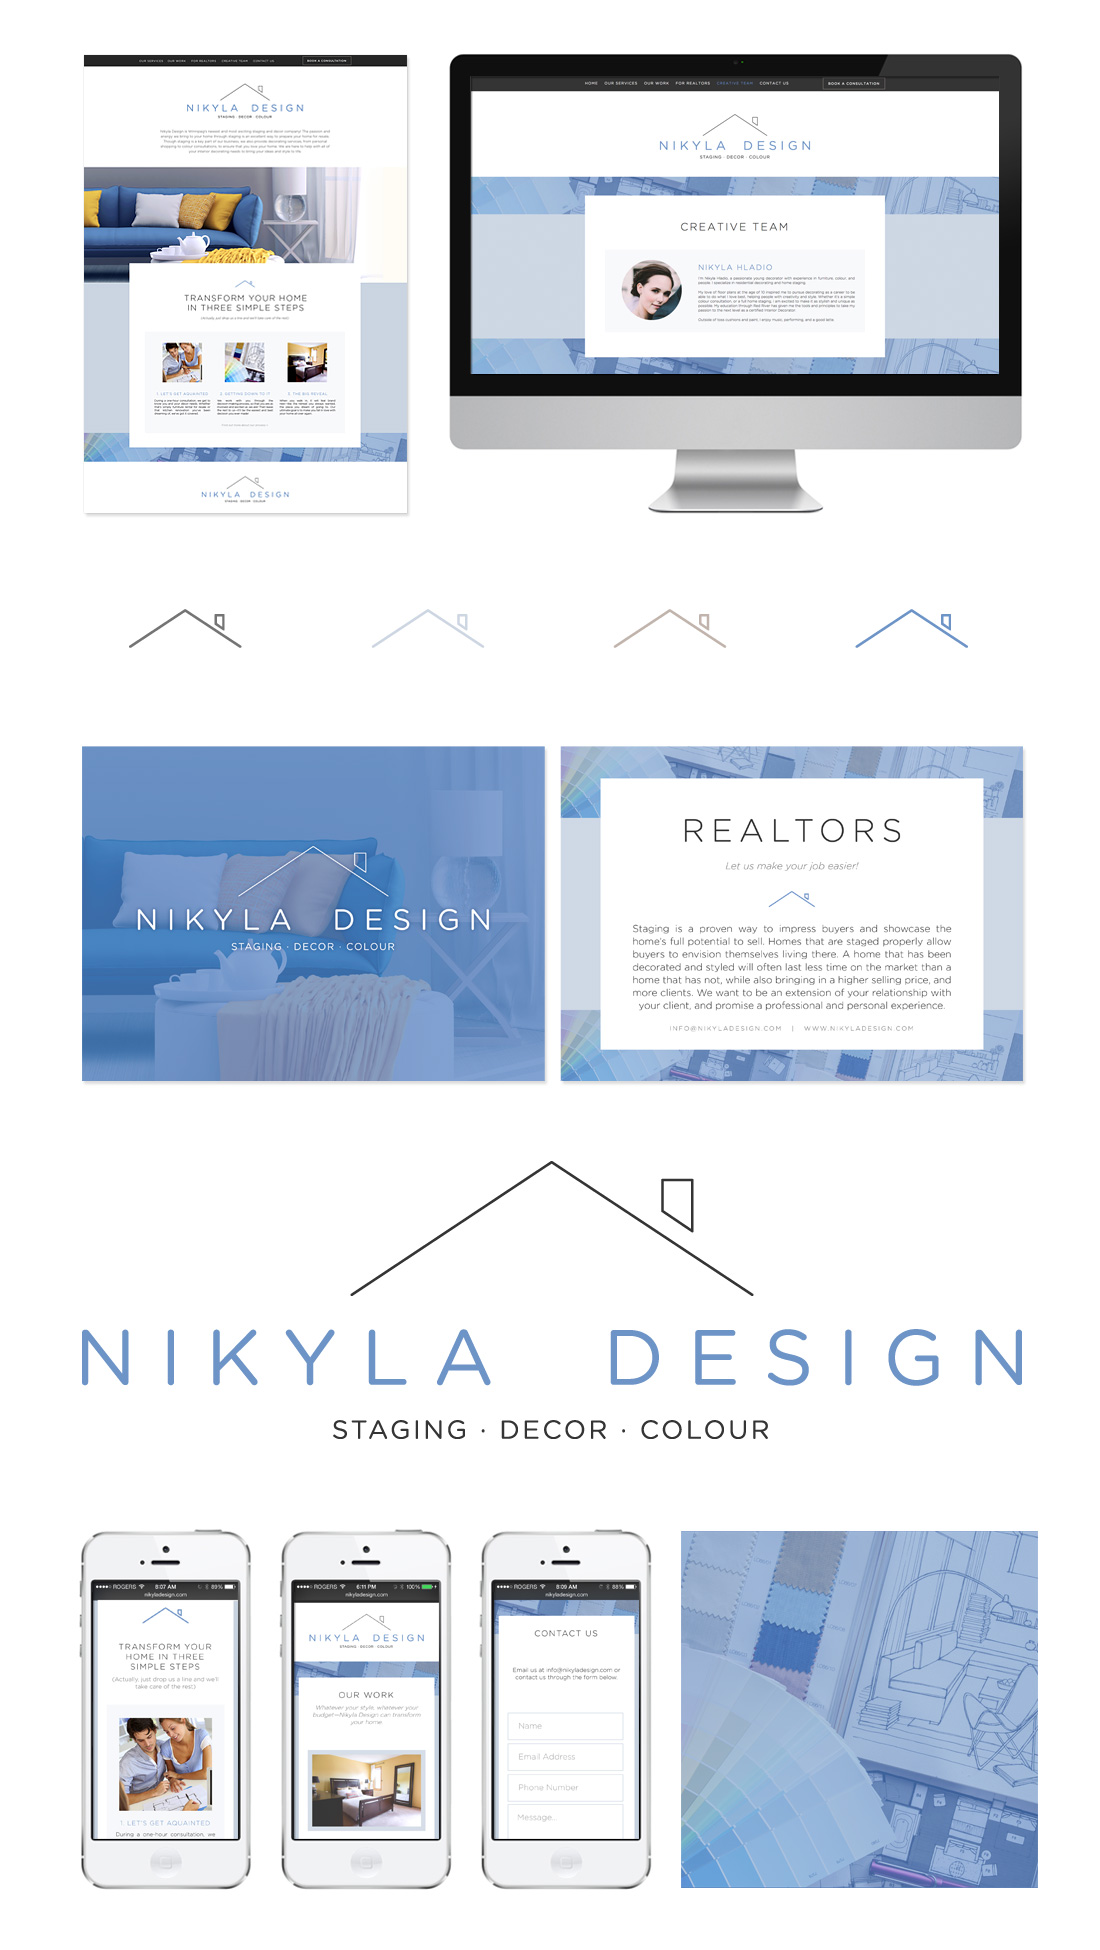 nikyla-design-website-design-branding-winnipeg-manitoba-responsive-mobile-optimized-board